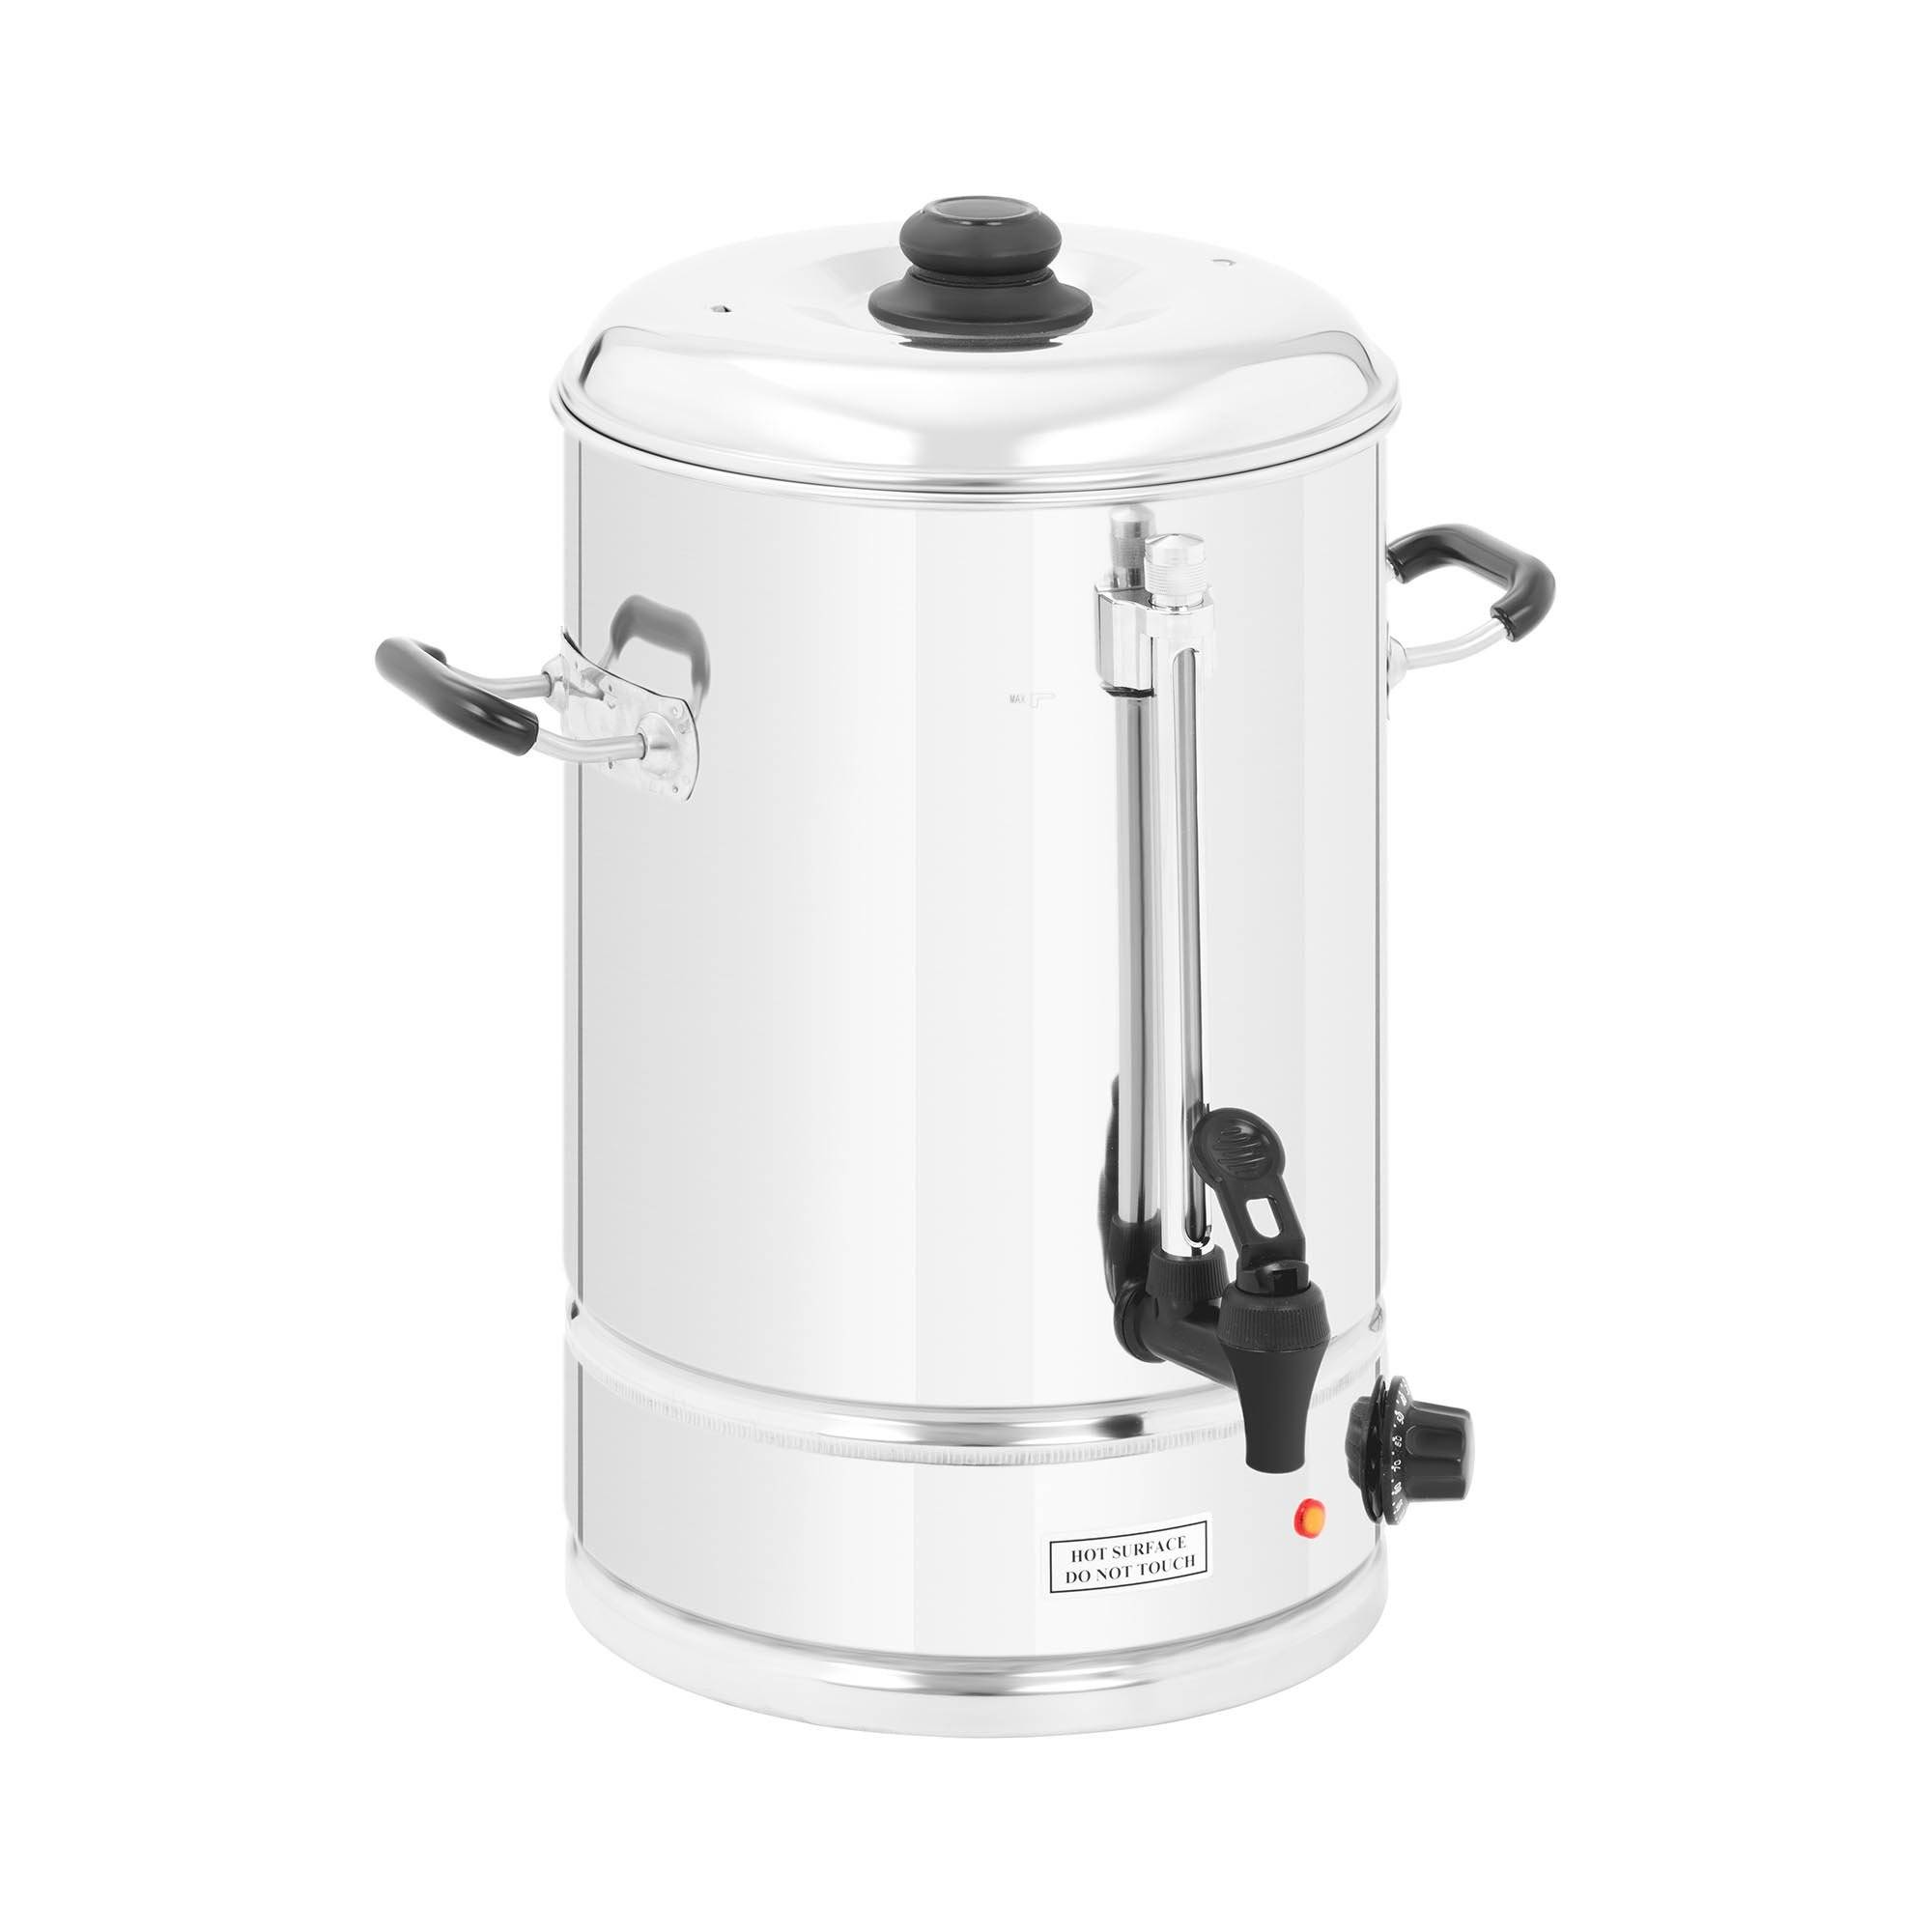 Royal Catering Commercial Hot Water Dispenser - 15 litres - 2,500 W